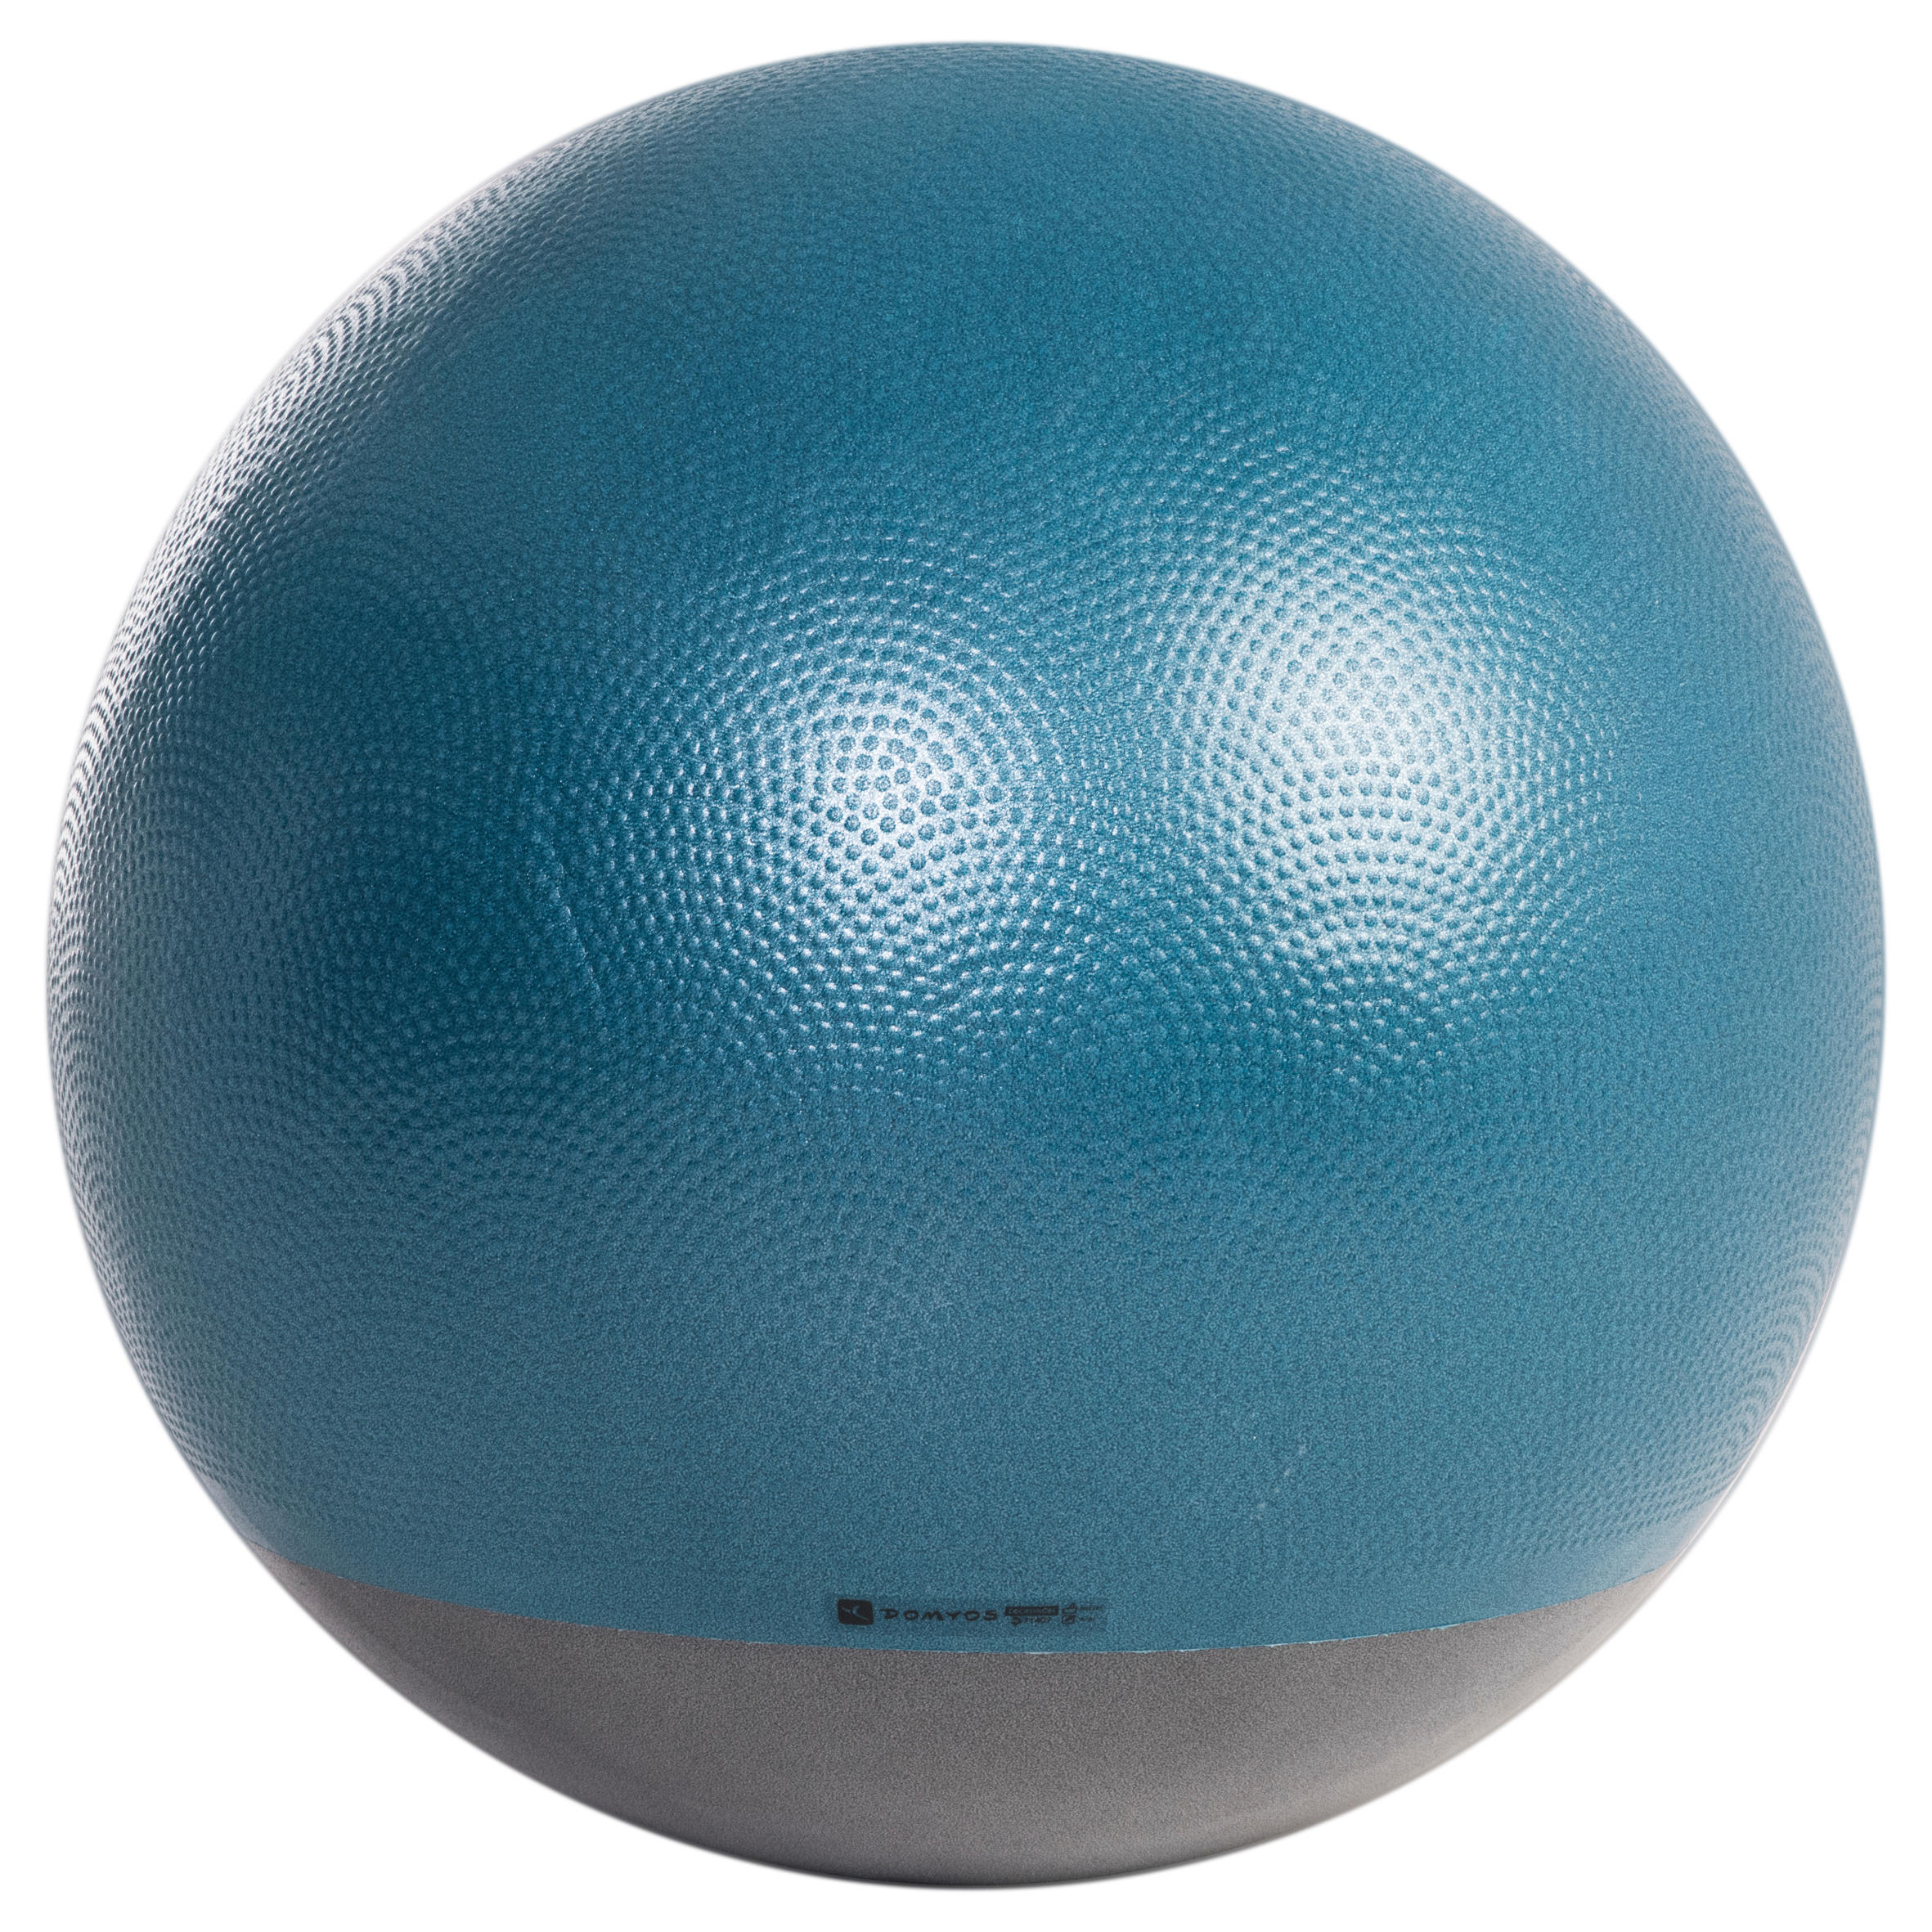 PILATES BALLON STABLE TAILLE G